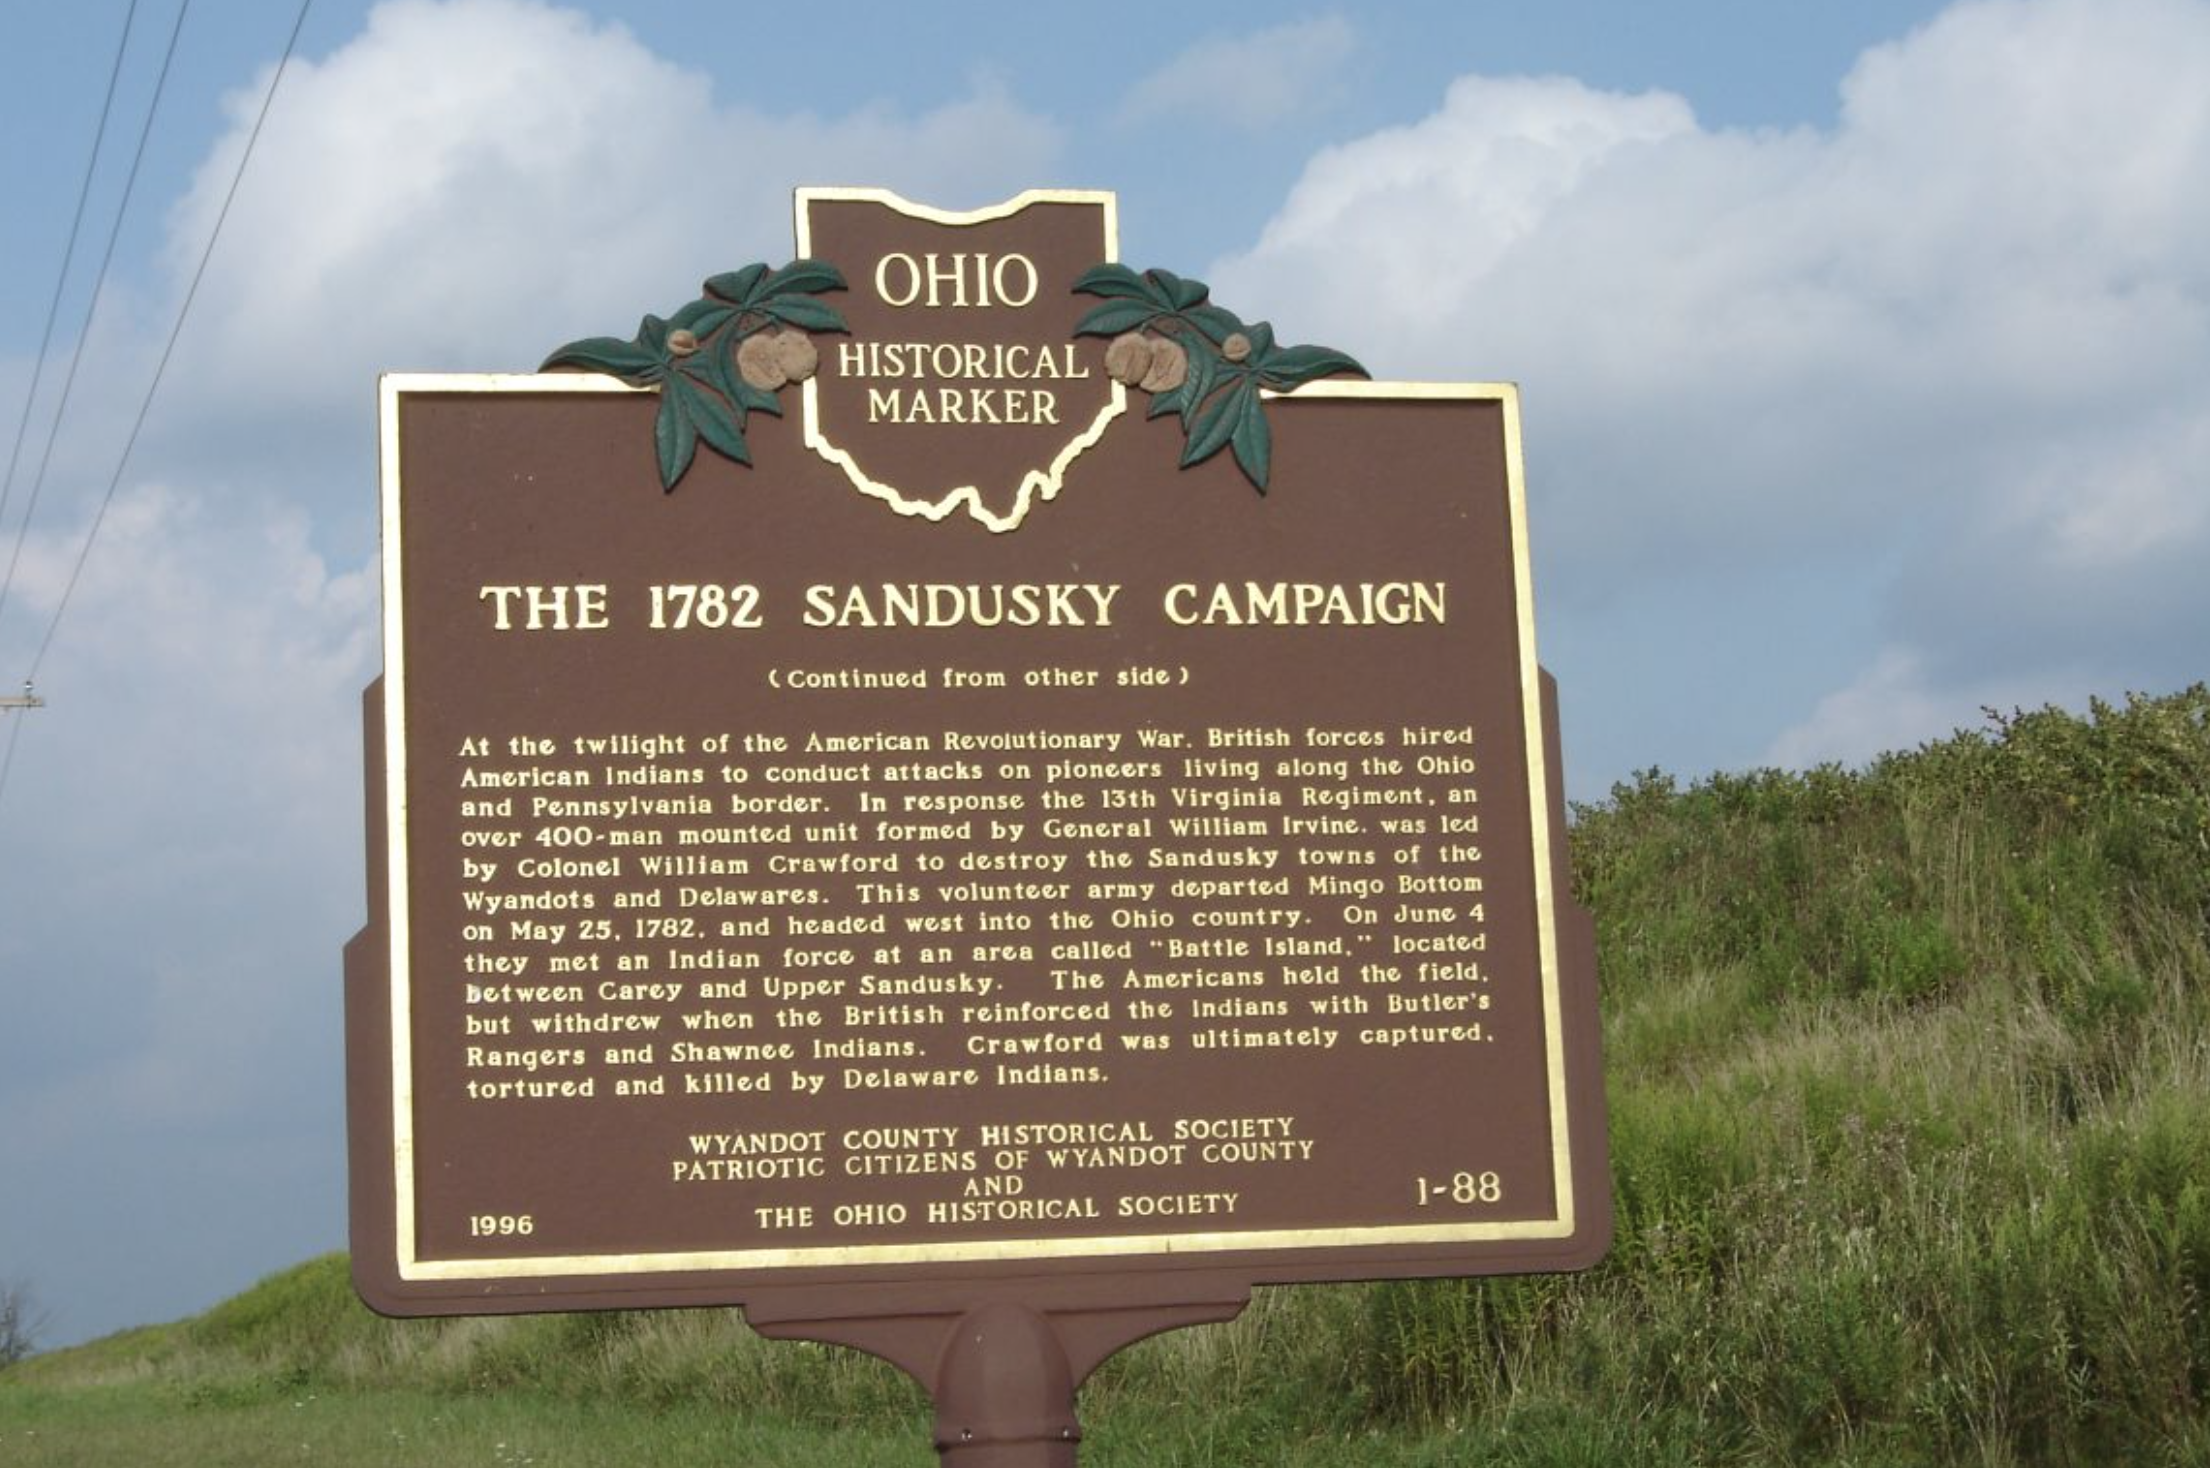 The Ohio Historical Society's marker near the Colonel Crawford Burn Site